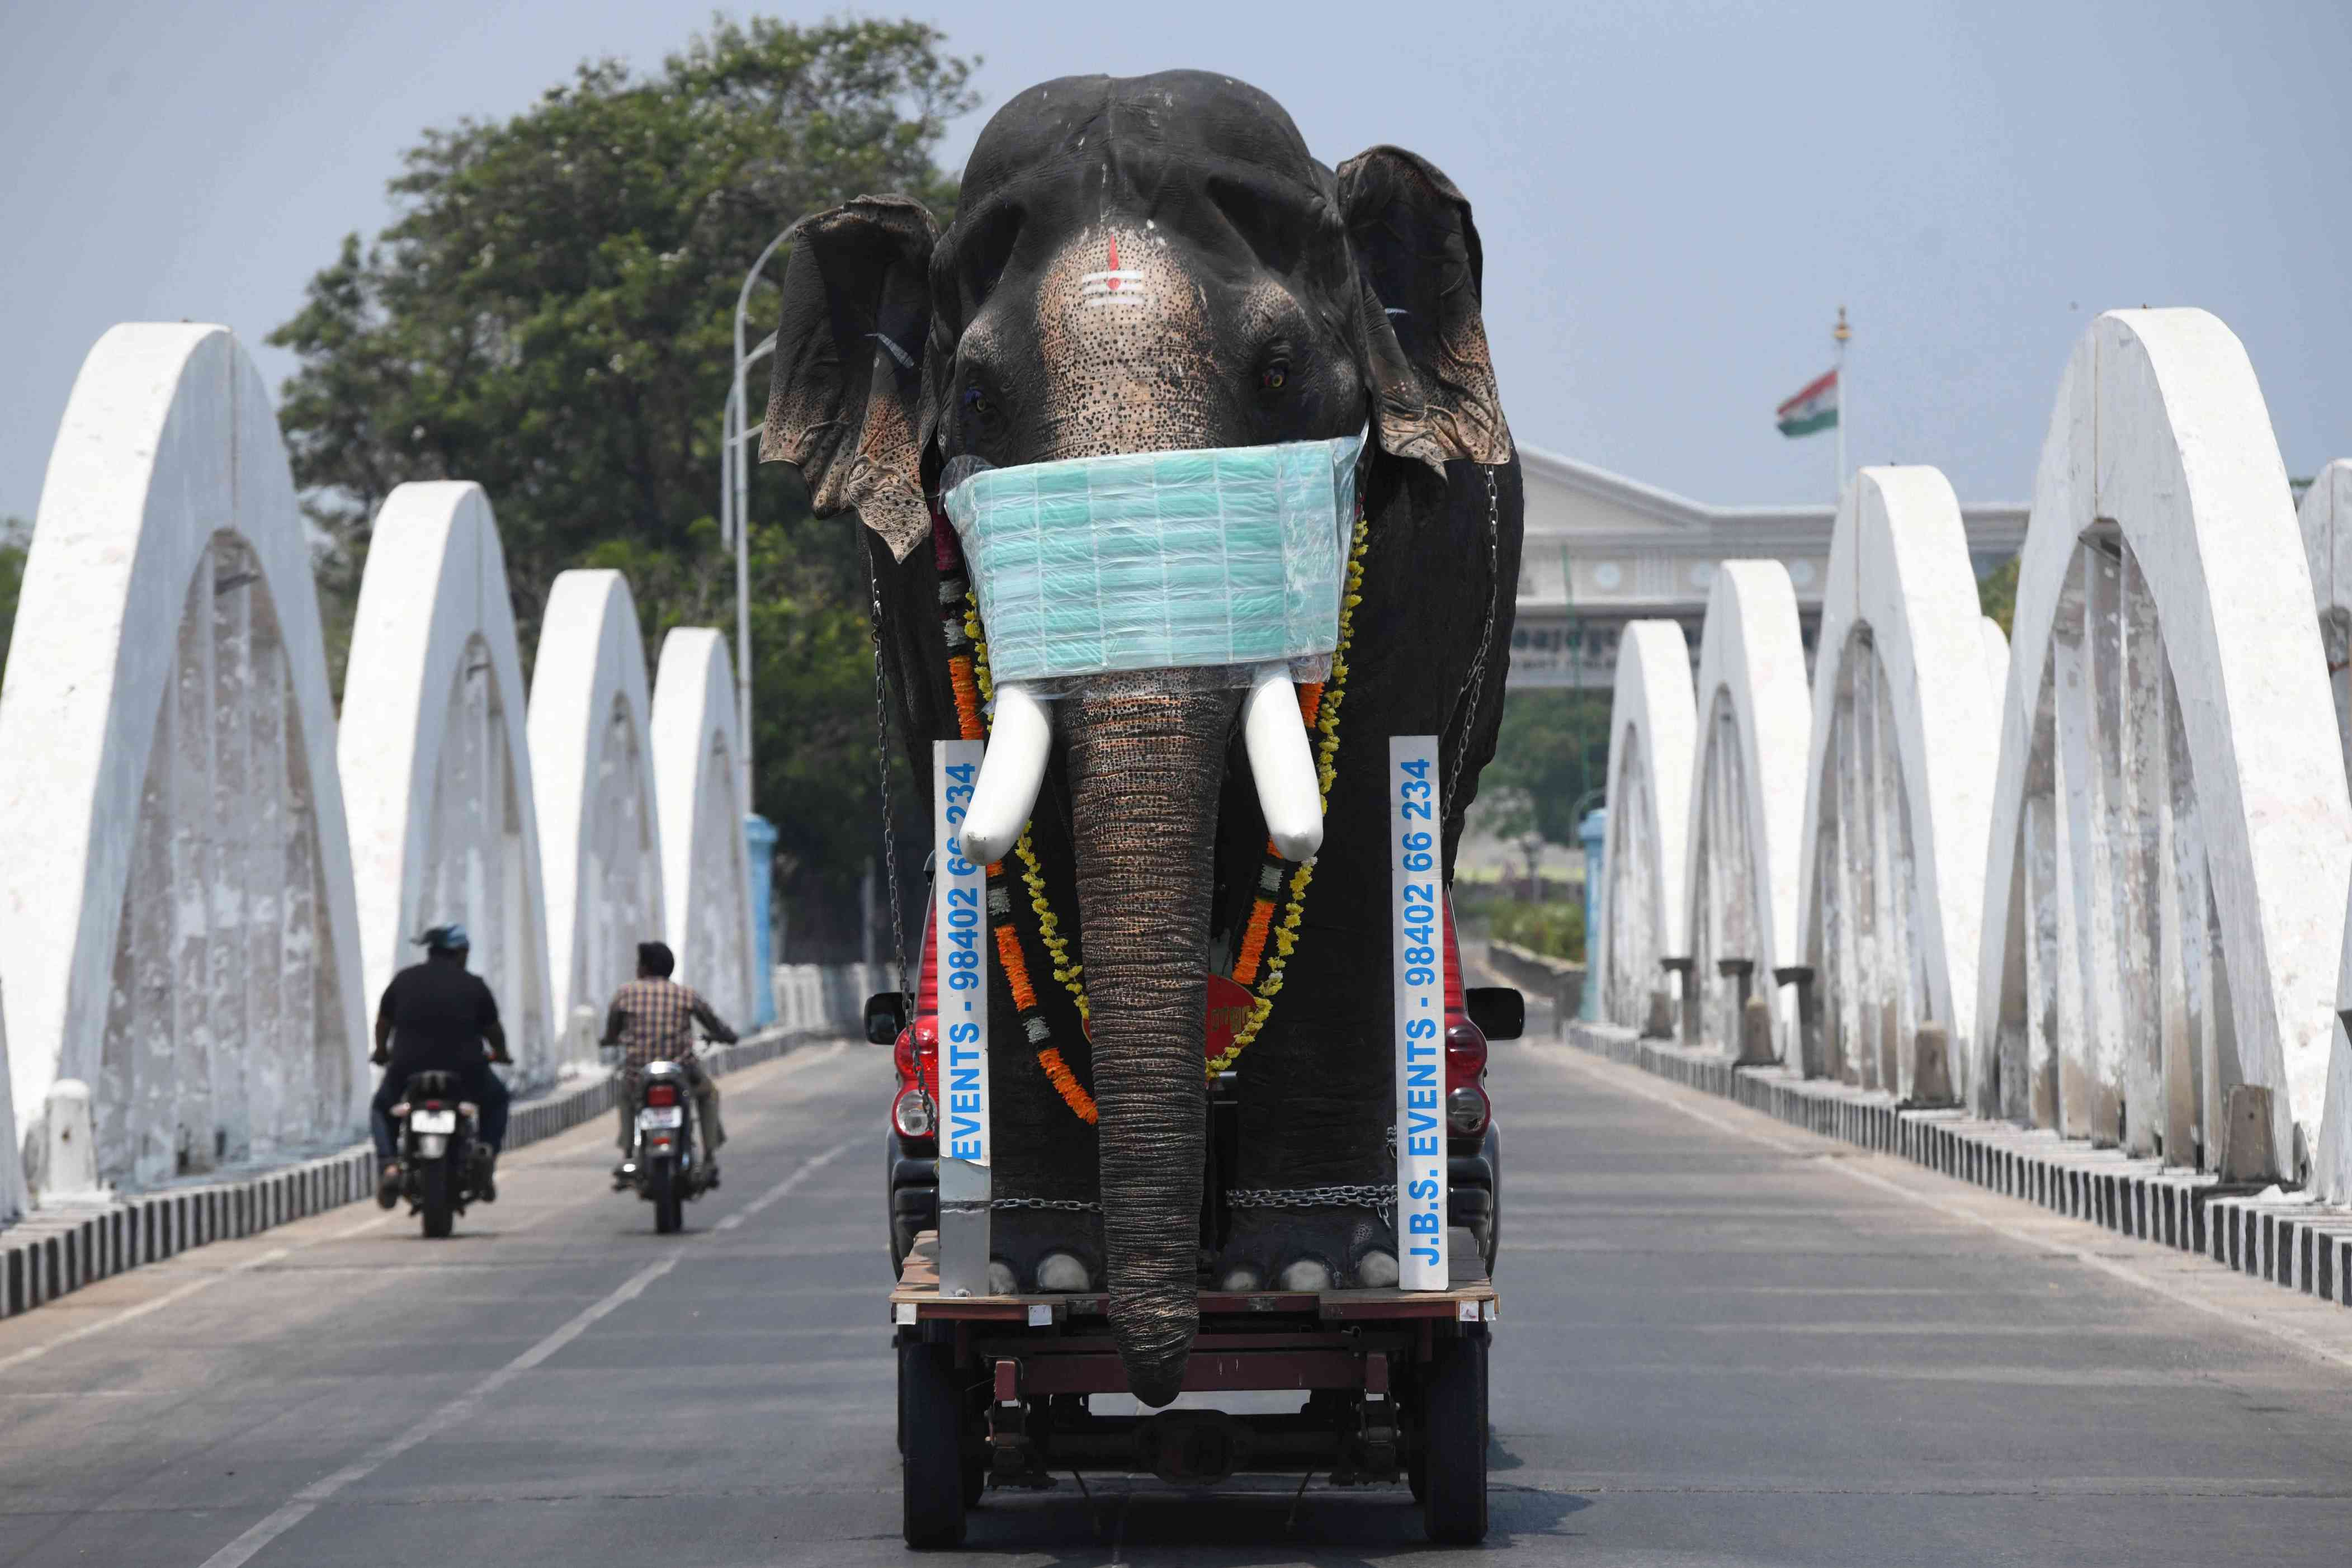 Slide 17 of 113: A replica of an elephant with a face mask is driven on trailer pulled by a car to bring awareness during a one-day Janata (civil) curfew imposed by the government amid concerns over the spread of the COVID-19 novel coronavirus in Chennai on March 22, 2020.